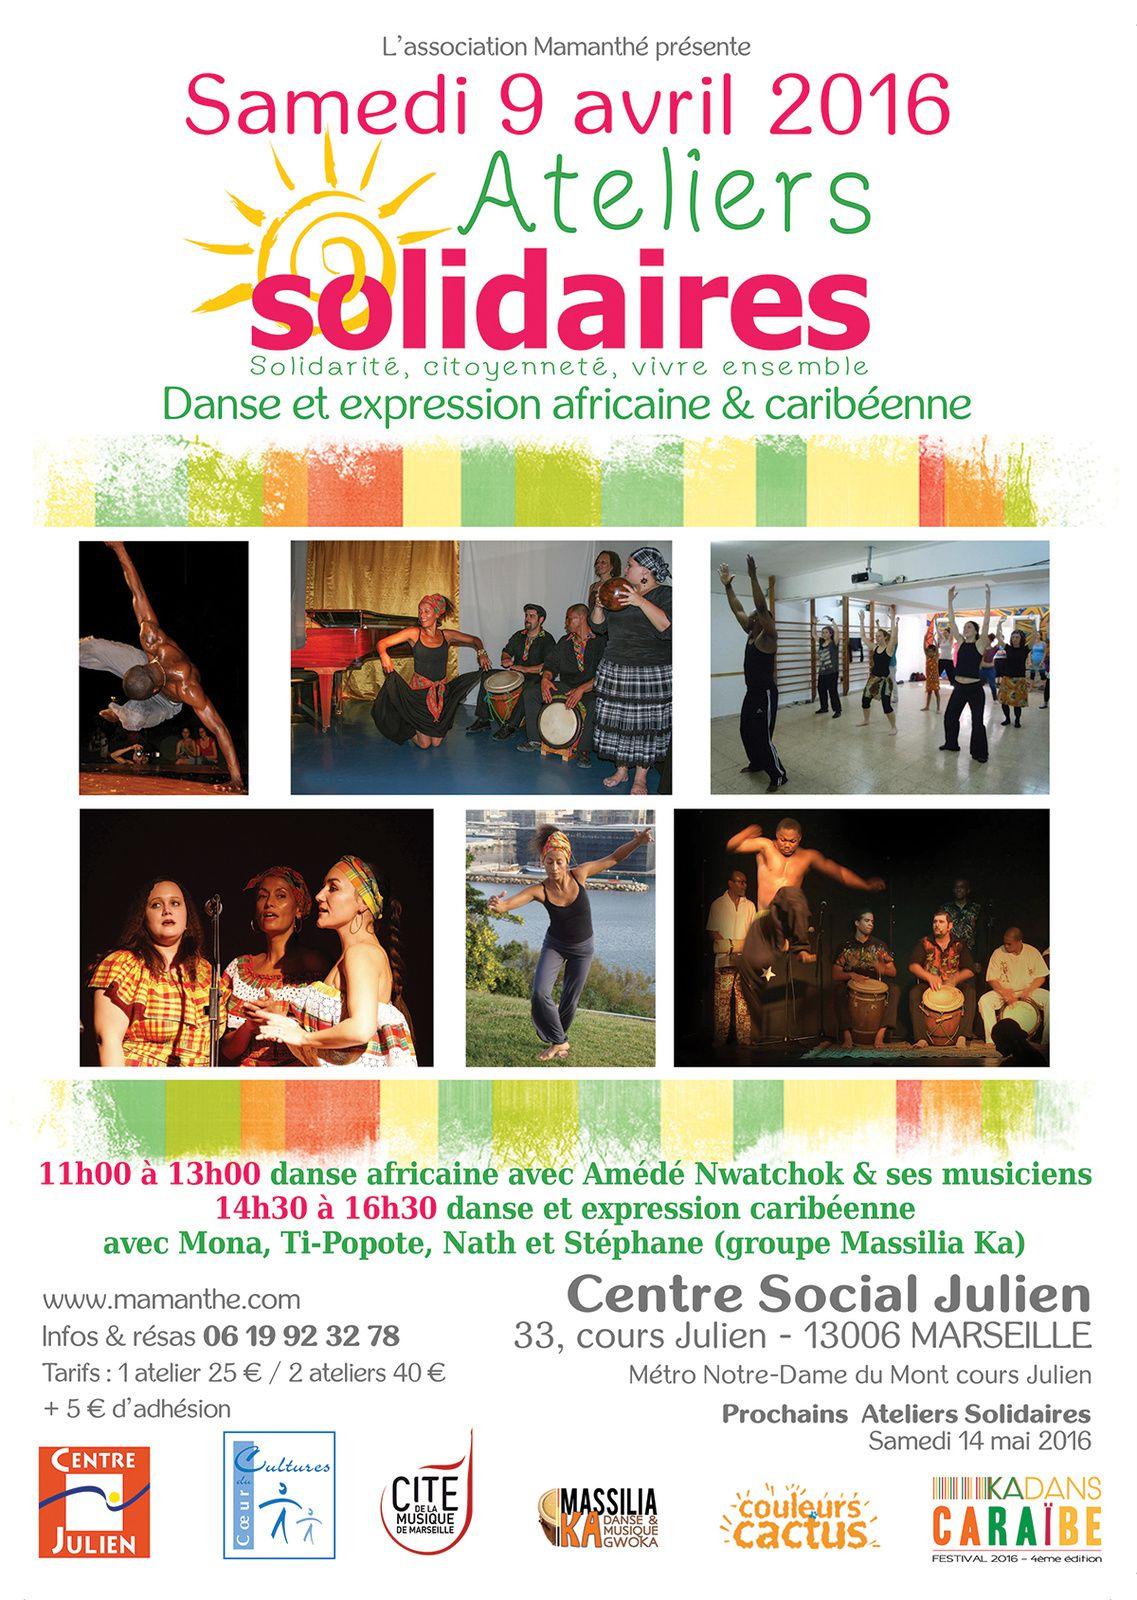 09/04/16 - Ateliers solidaires - Marseille